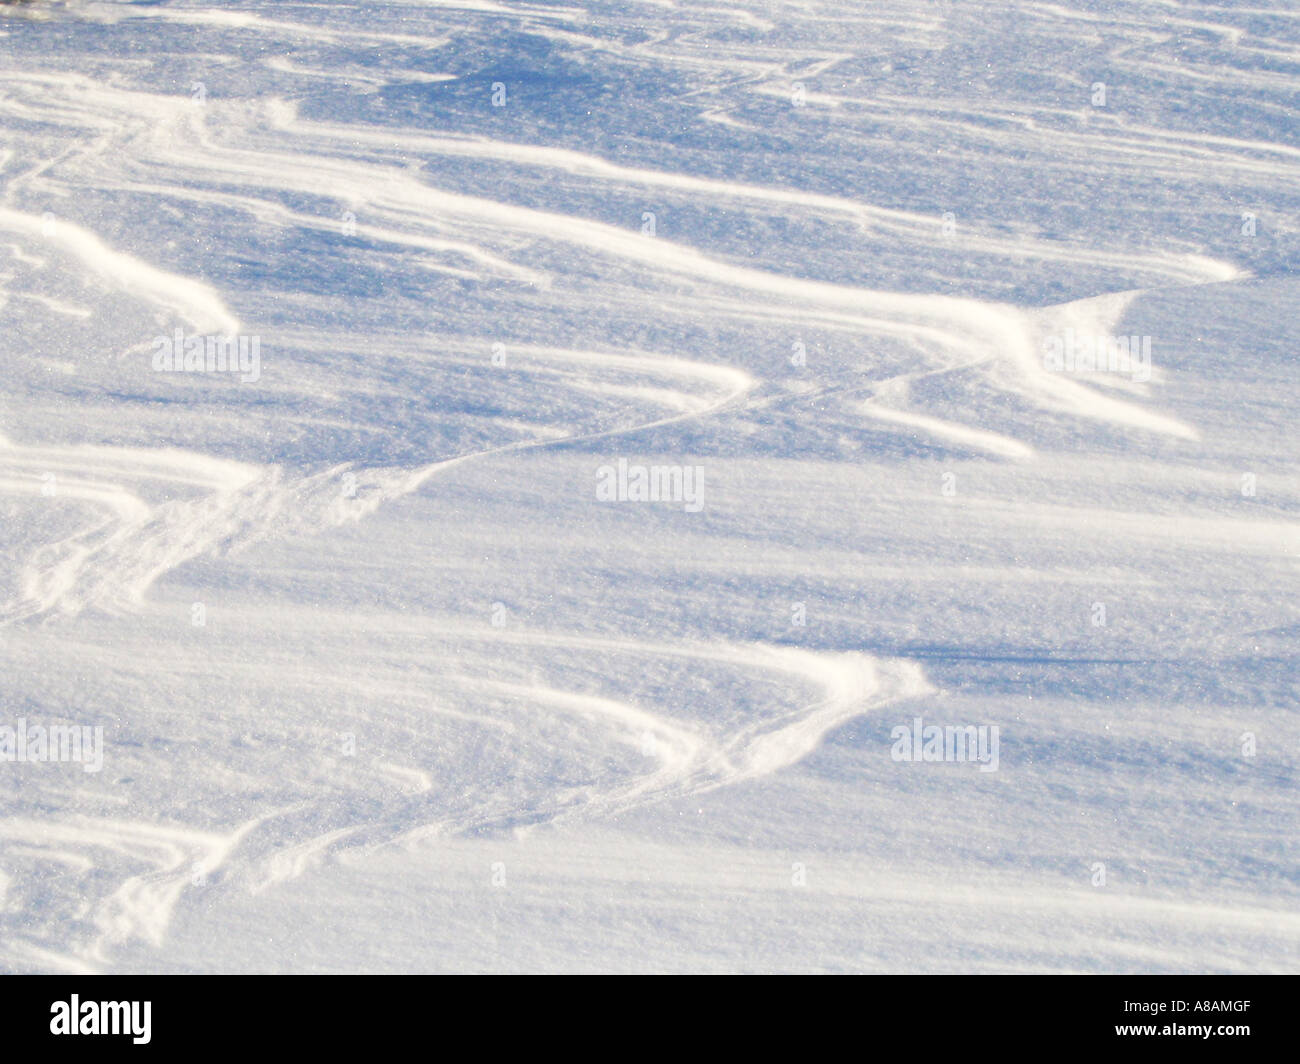 Driven By Winter Wind >> Sastrugi Is Wind Driven Waves Of Snow Stock Photo 6881550 Alamy